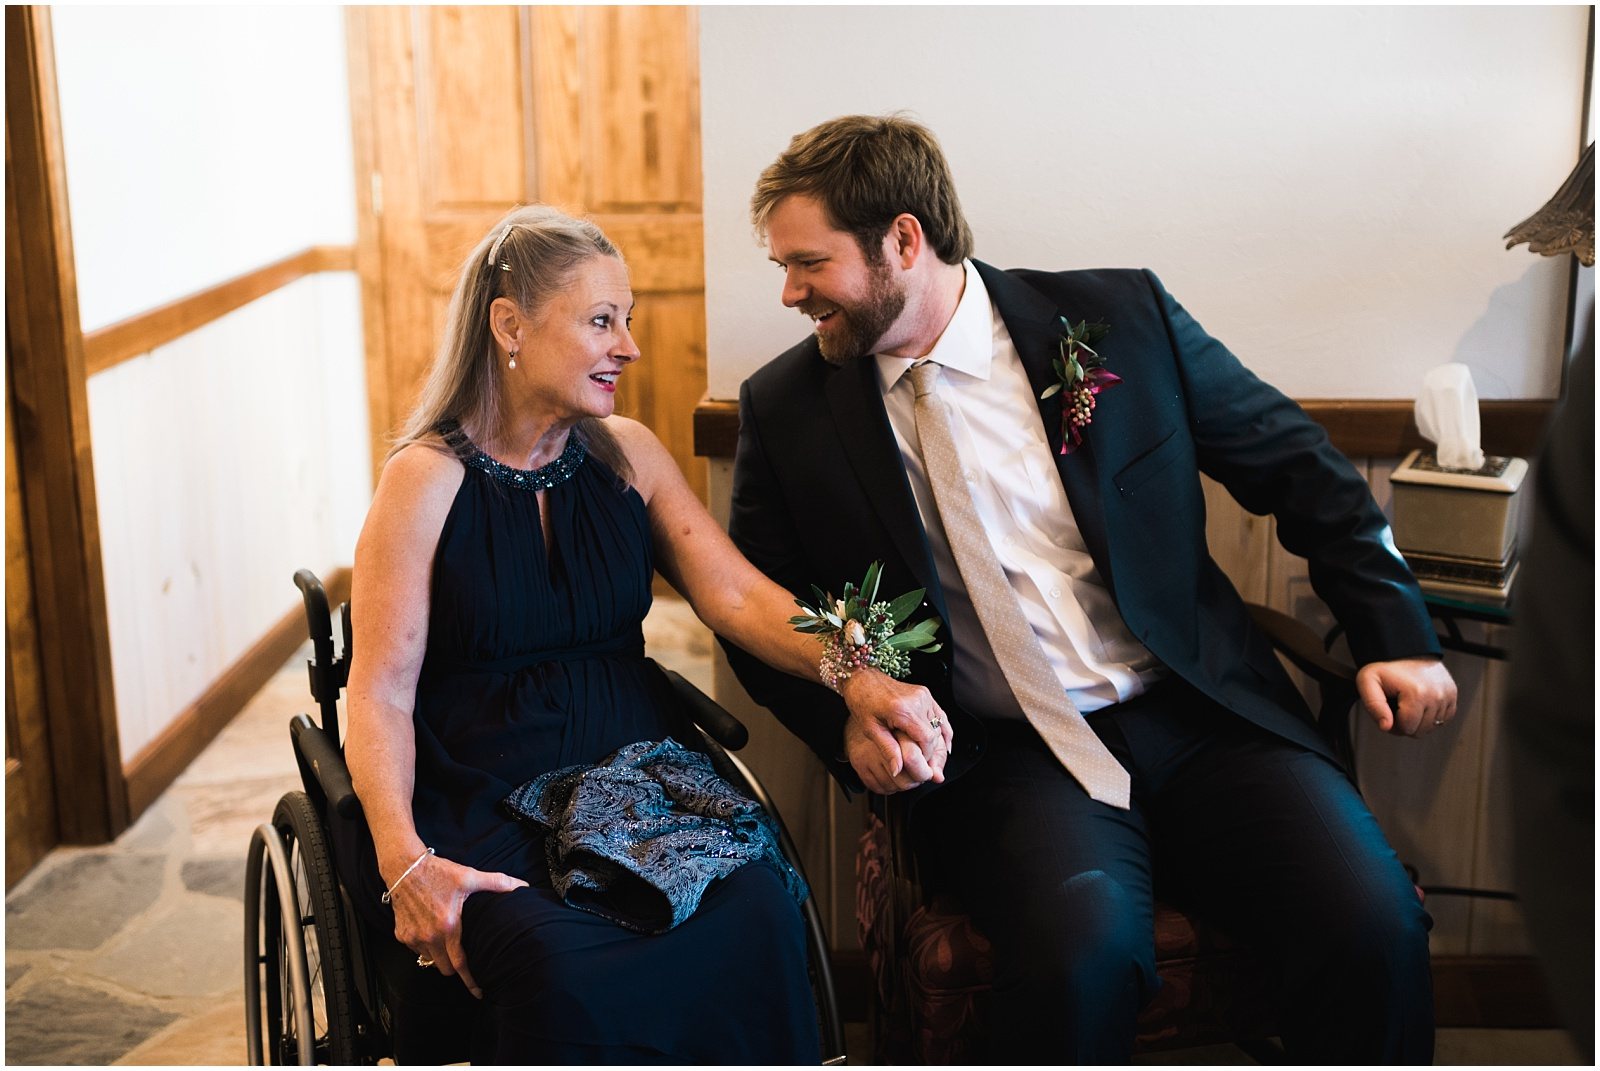 Mother and groomsman candid